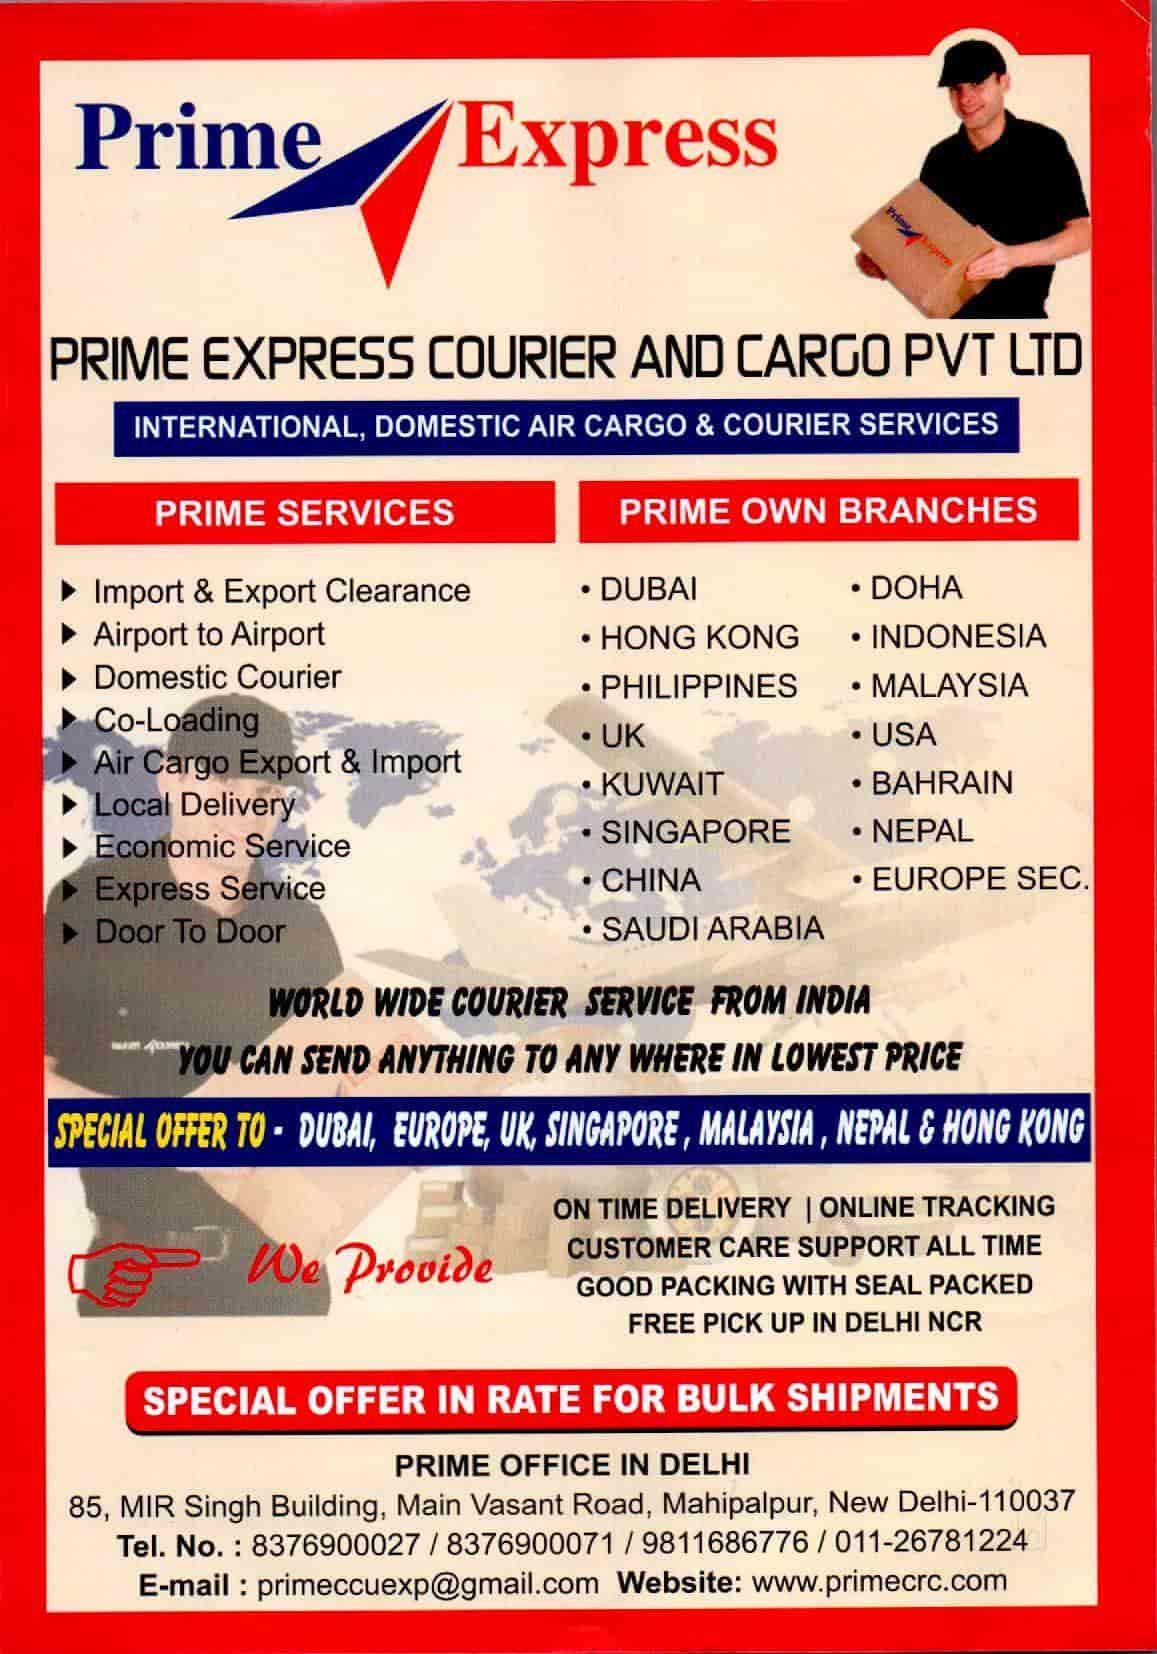 Prime Express Courier and Cargo Pvt Ltd